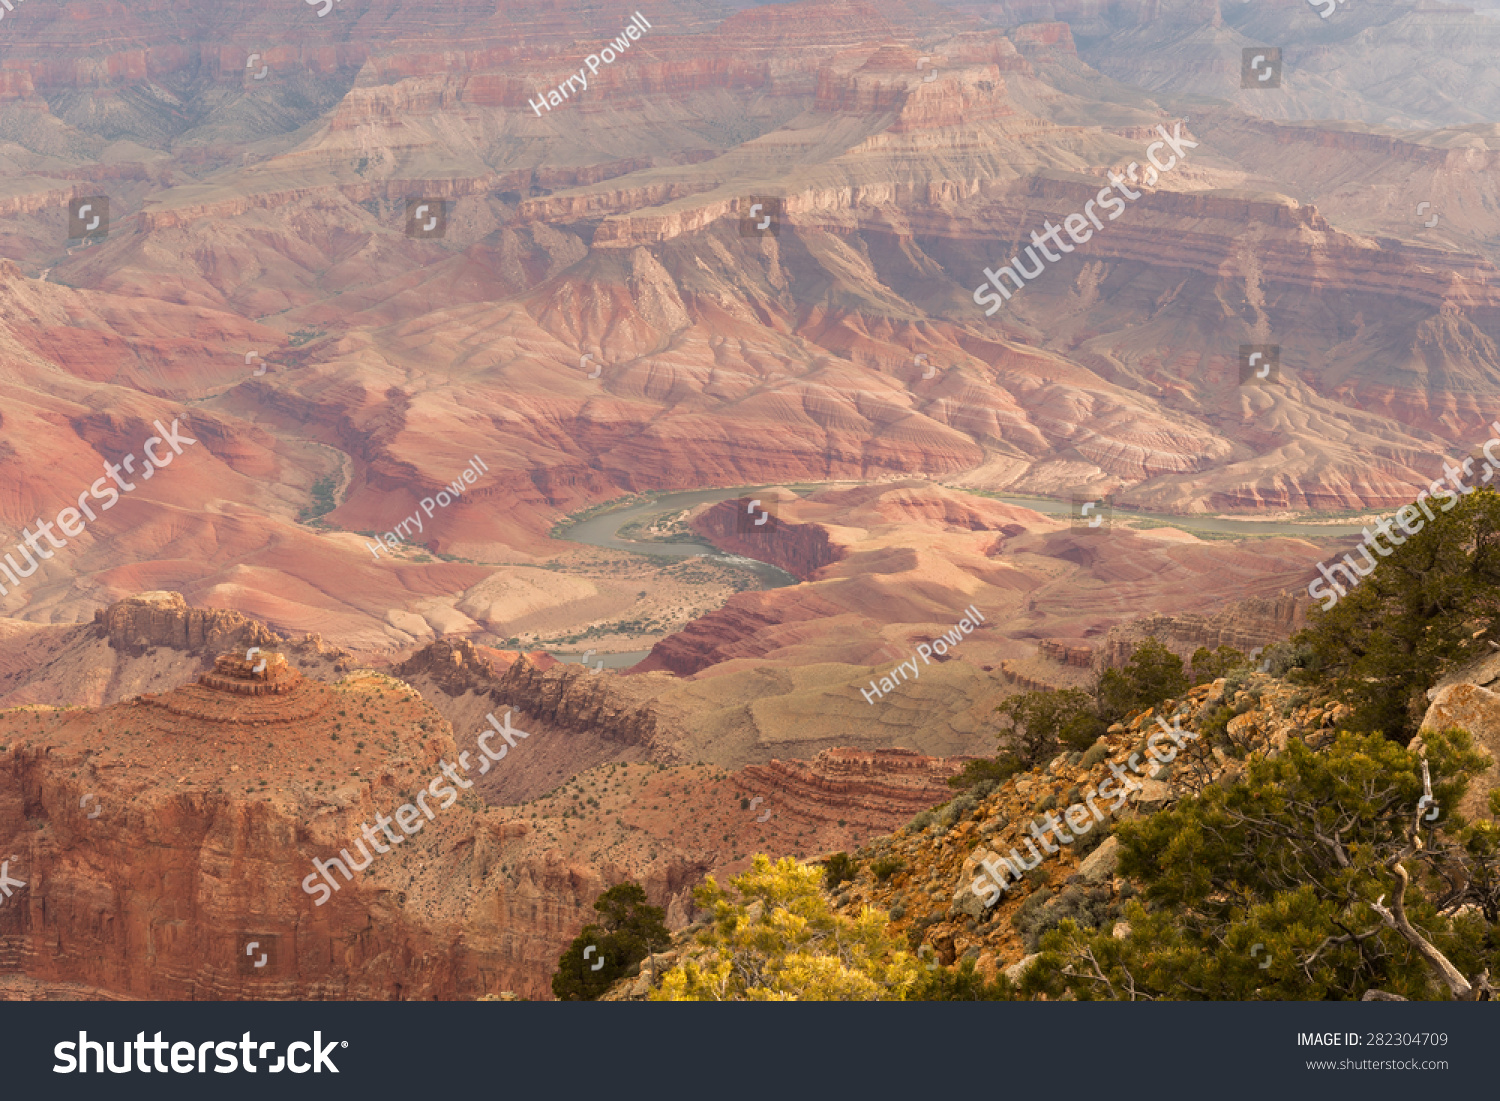 Colorado river carving thru the grand canyon from